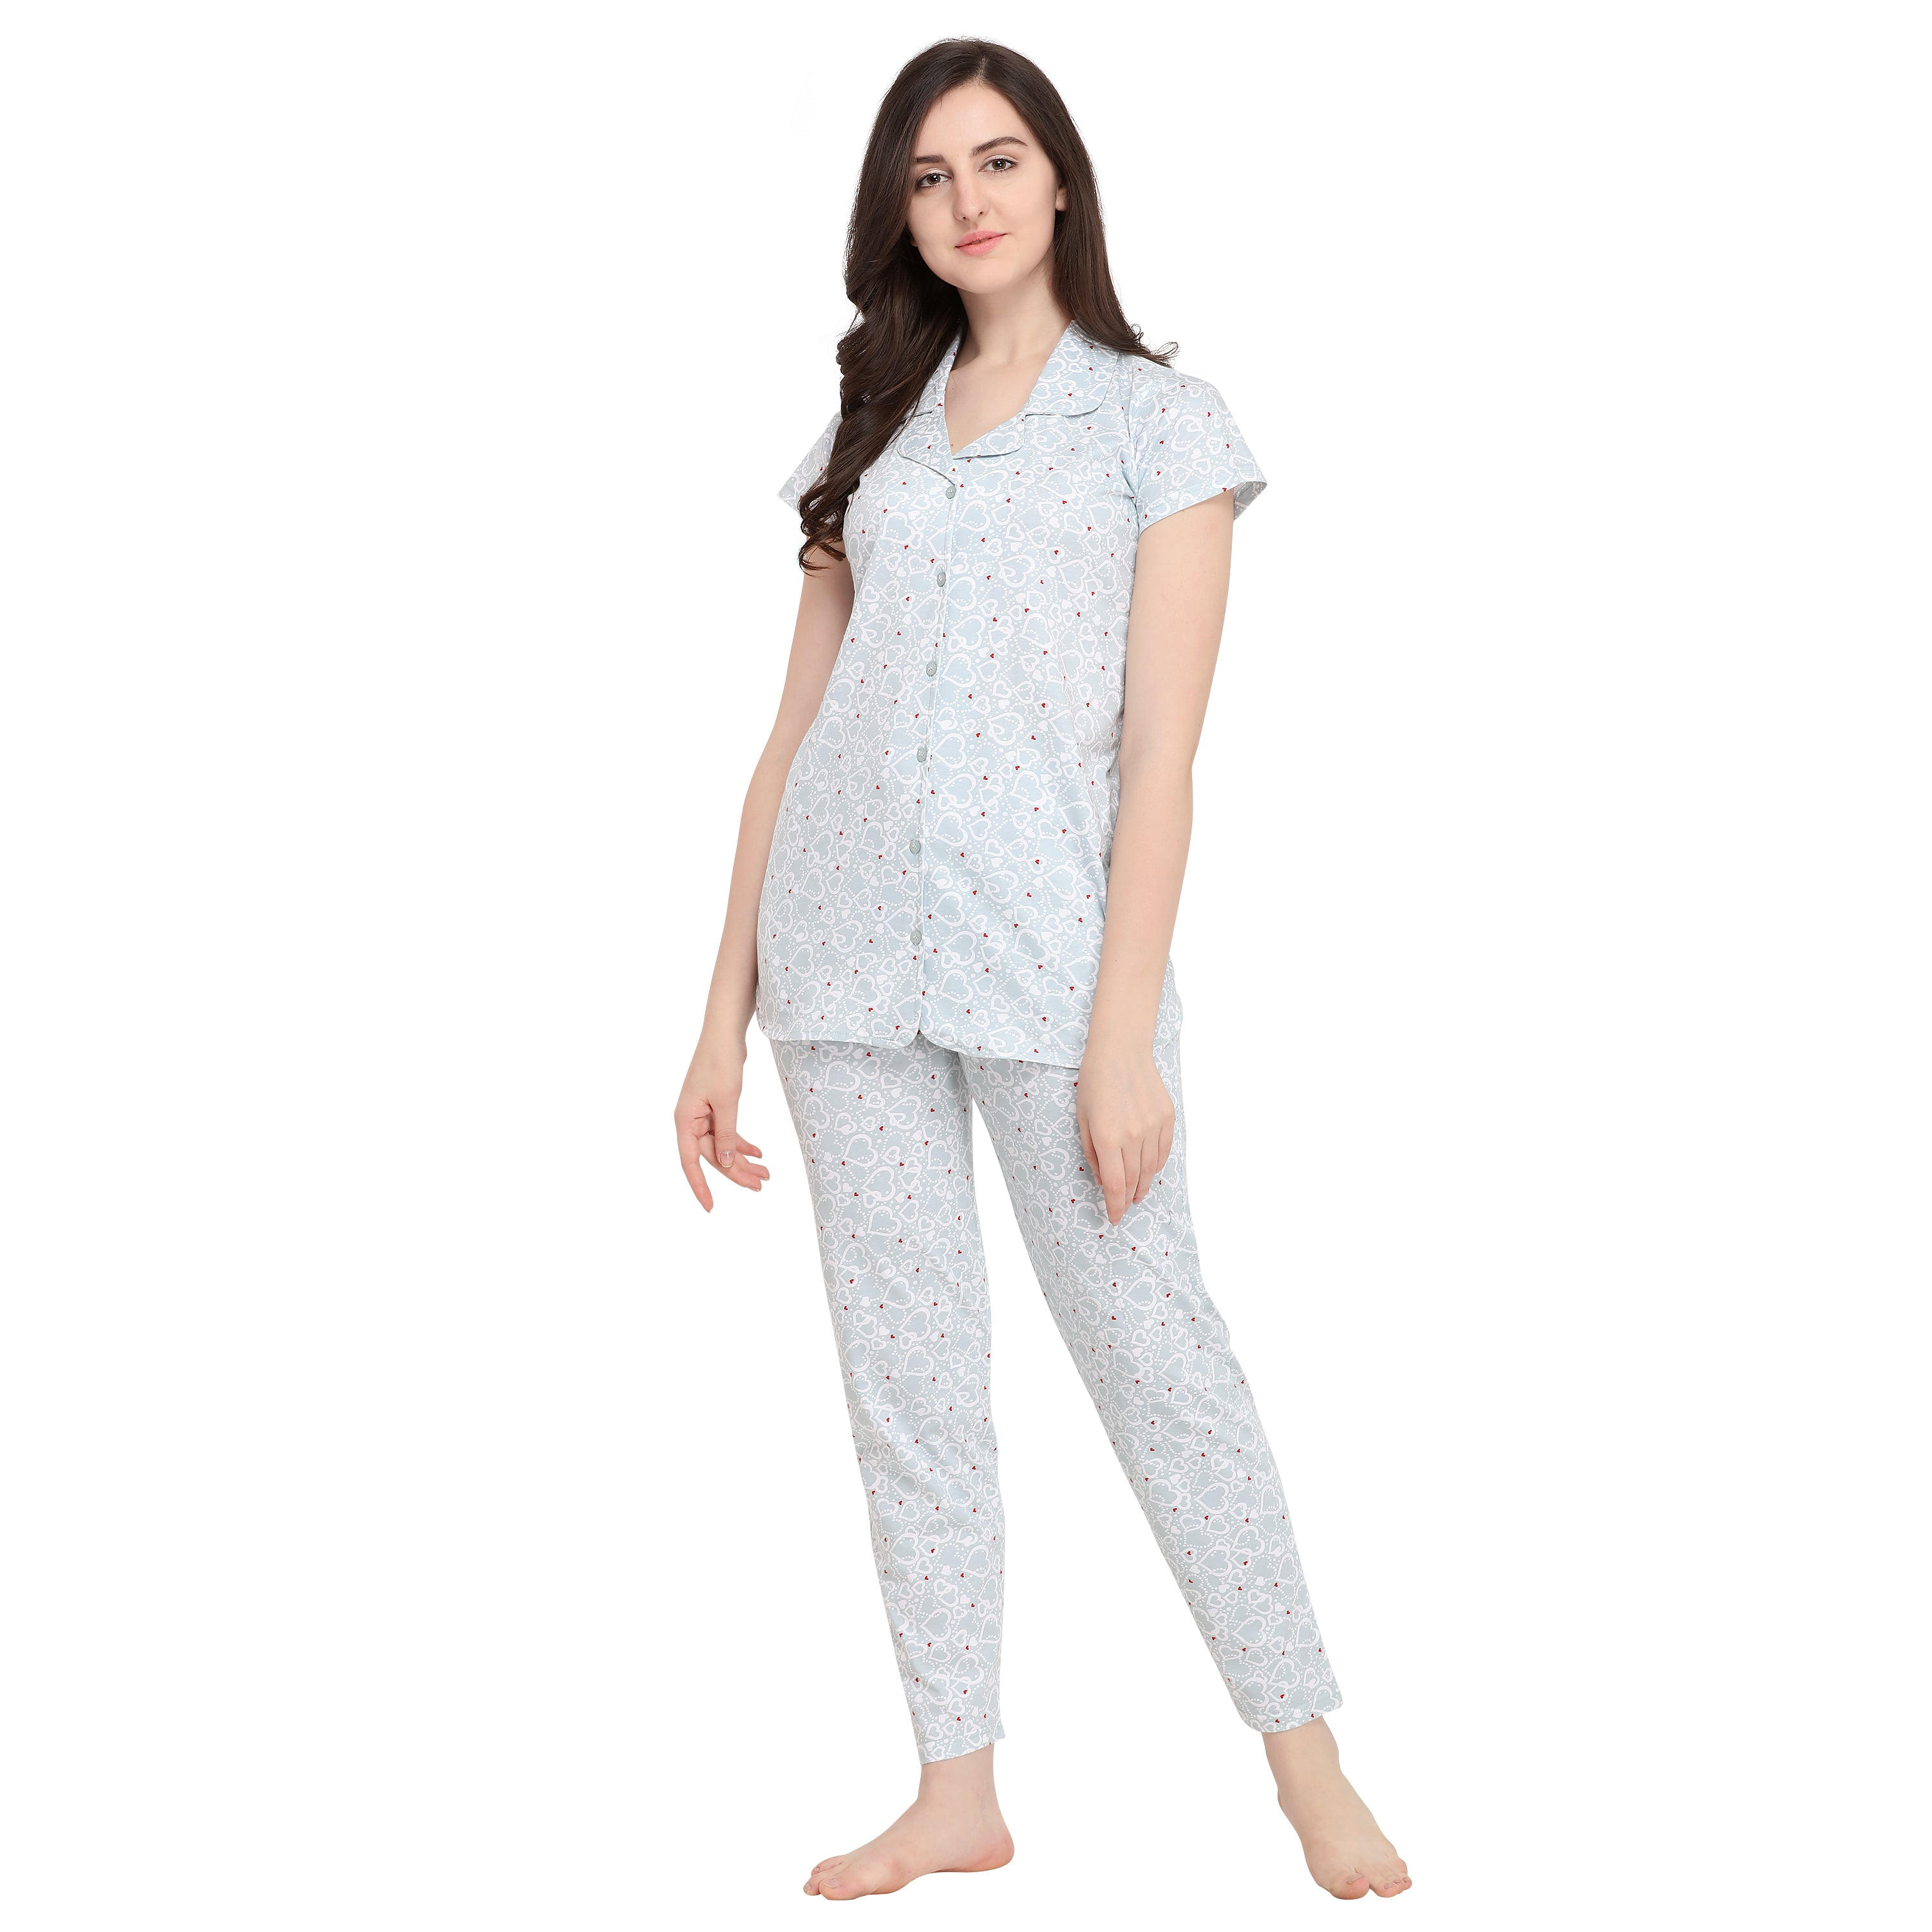 5 Constructive Stuff to Do While You're In a Lazy Sleepwear.